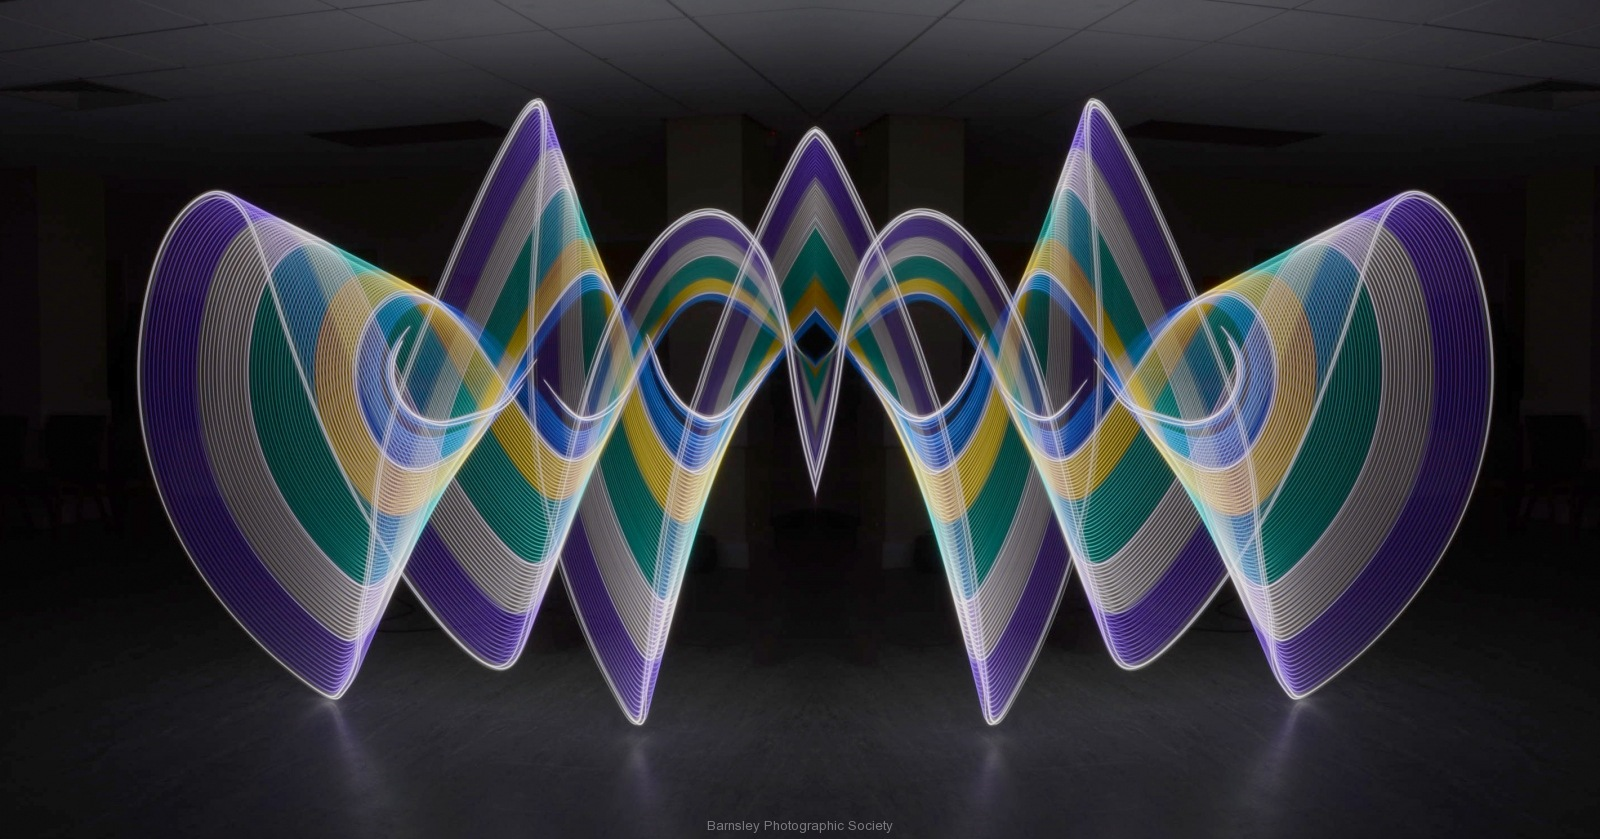 Painting in Light II  by  Dave Rippon  5